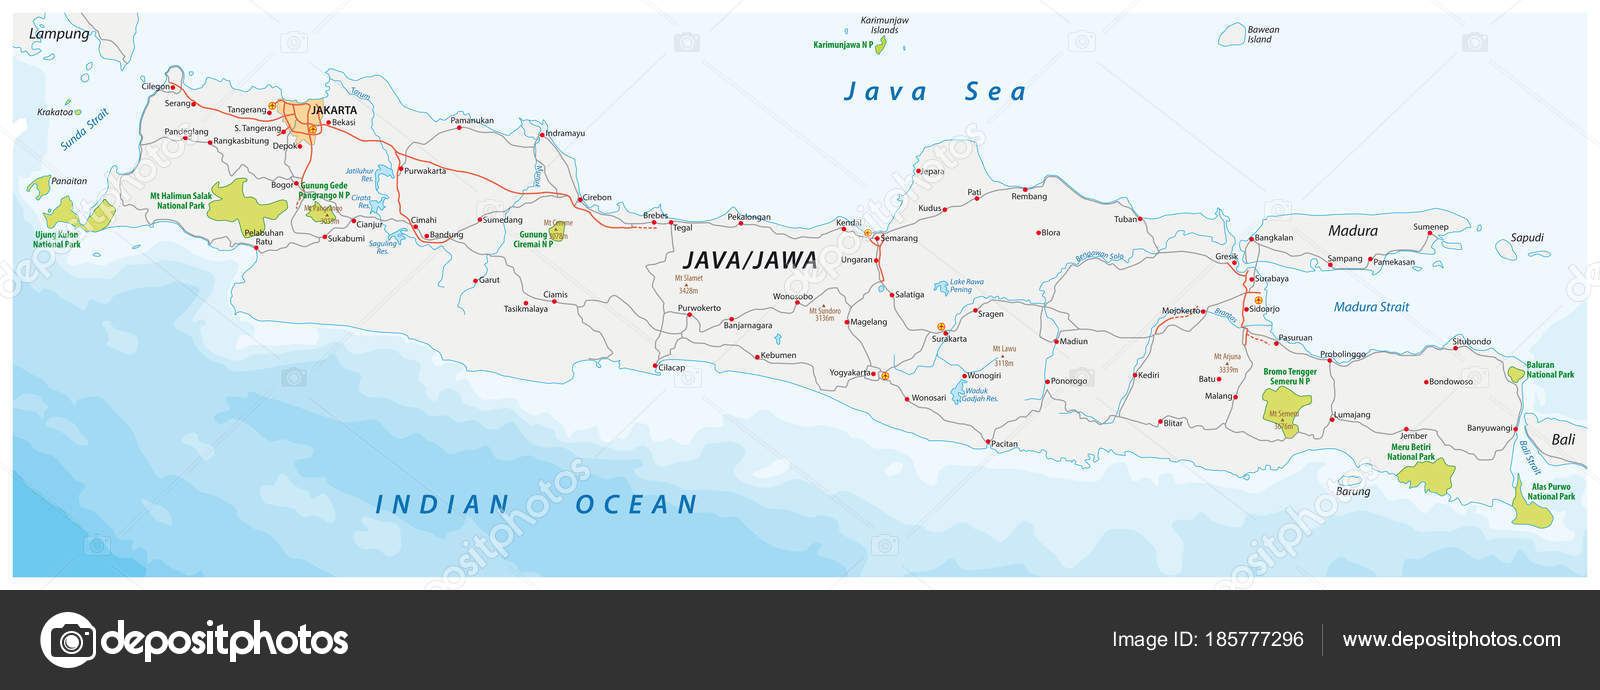 Vector road national park map indonesian island java stock vector vector road national park map indonesian island java stock vector gumiabroncs Images